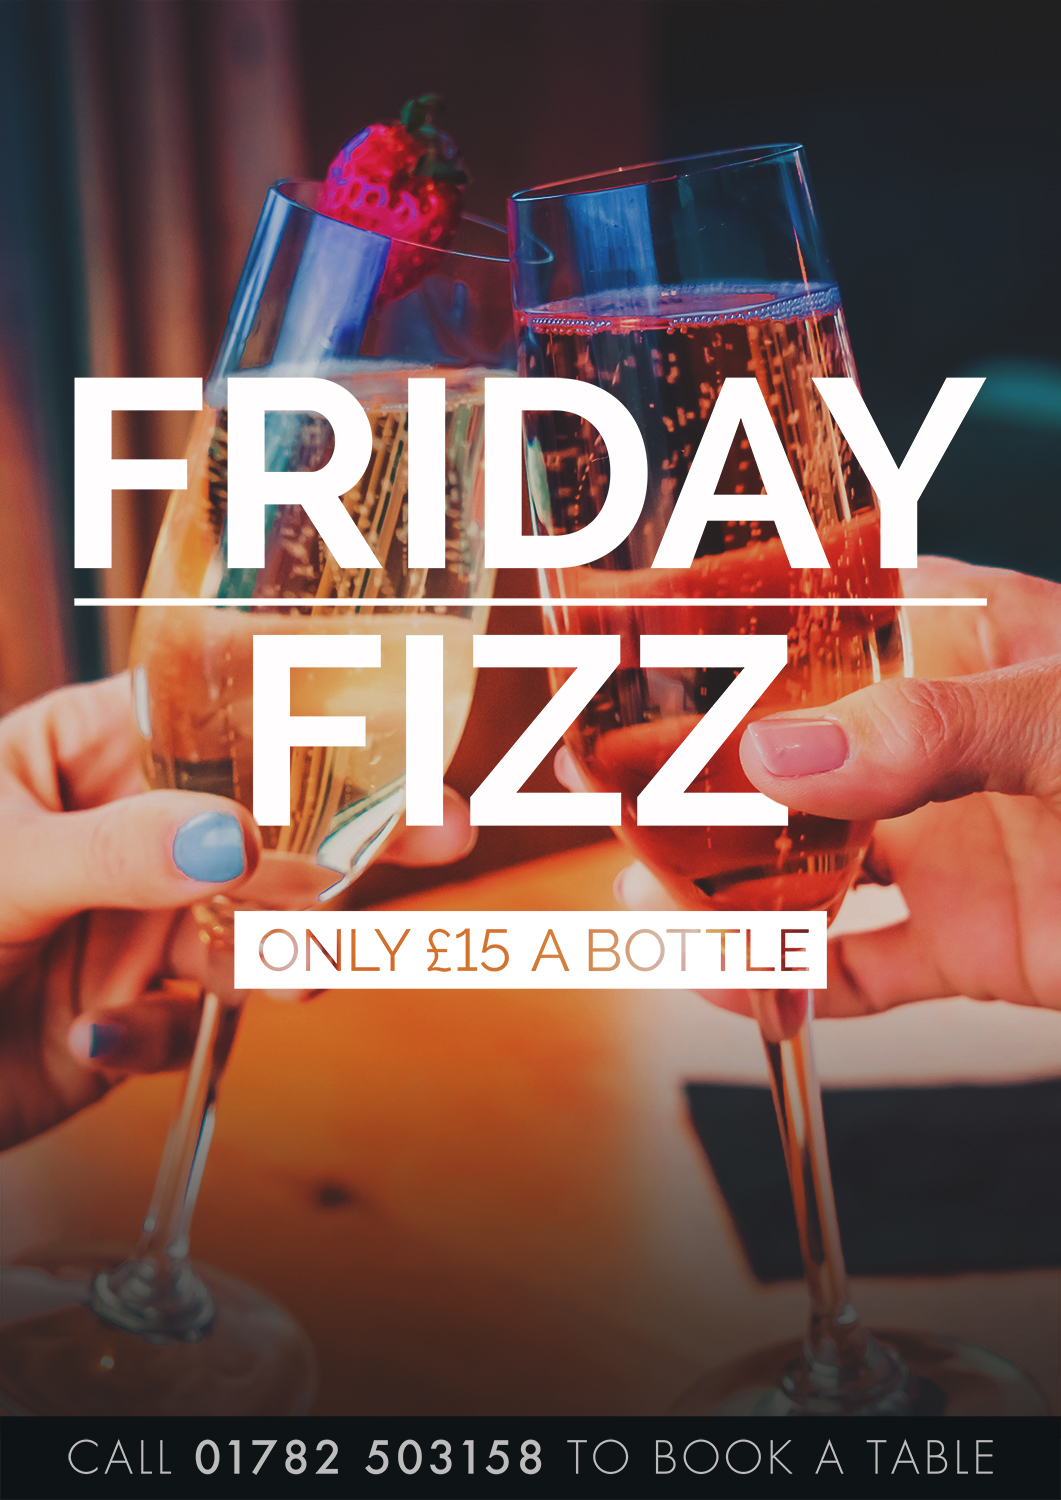 Our Friday Fizz continues to book a table call 01782-503158 option 2